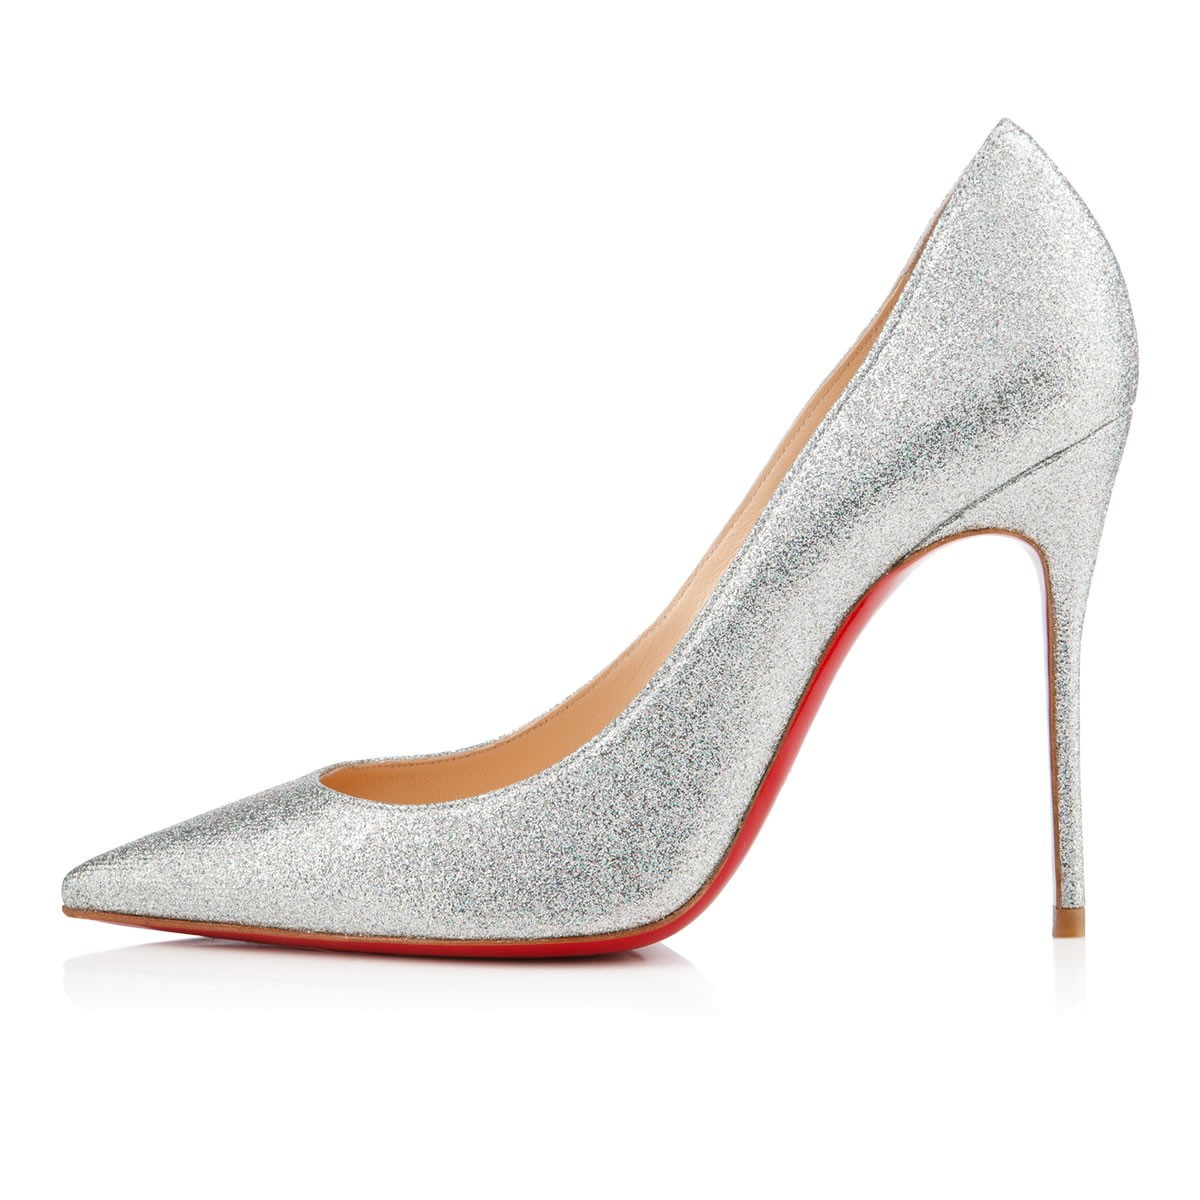 louboutin shoes cost - Christian louboutin Decollete Glitter Mini in Silver | Lyst